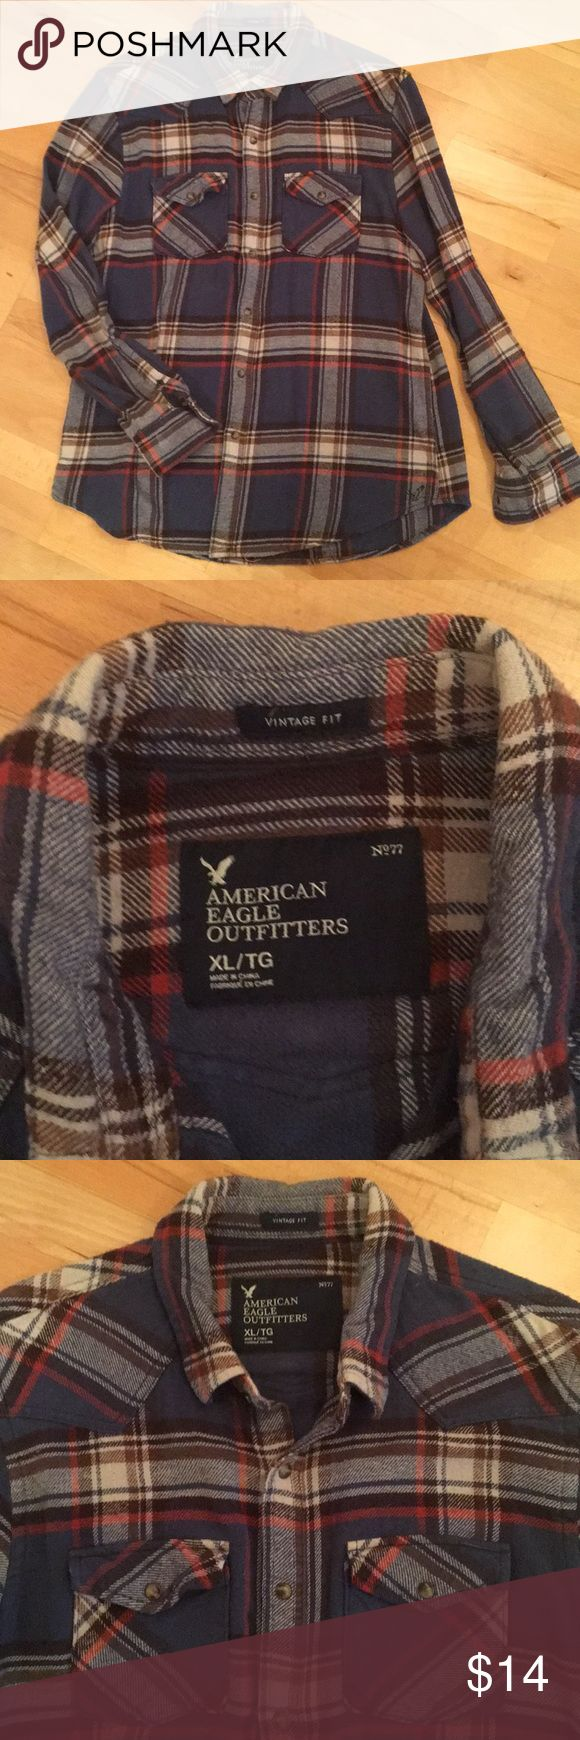 American Eagle Men's Flannel Shirt American Eagle Men's Flannel Button-down Shirt. Blue with brown, white, and burnt orange stripes. Snap buttons. Worn but good condition. American Eagle Outfitters Shirts Casual Button Down Shirts